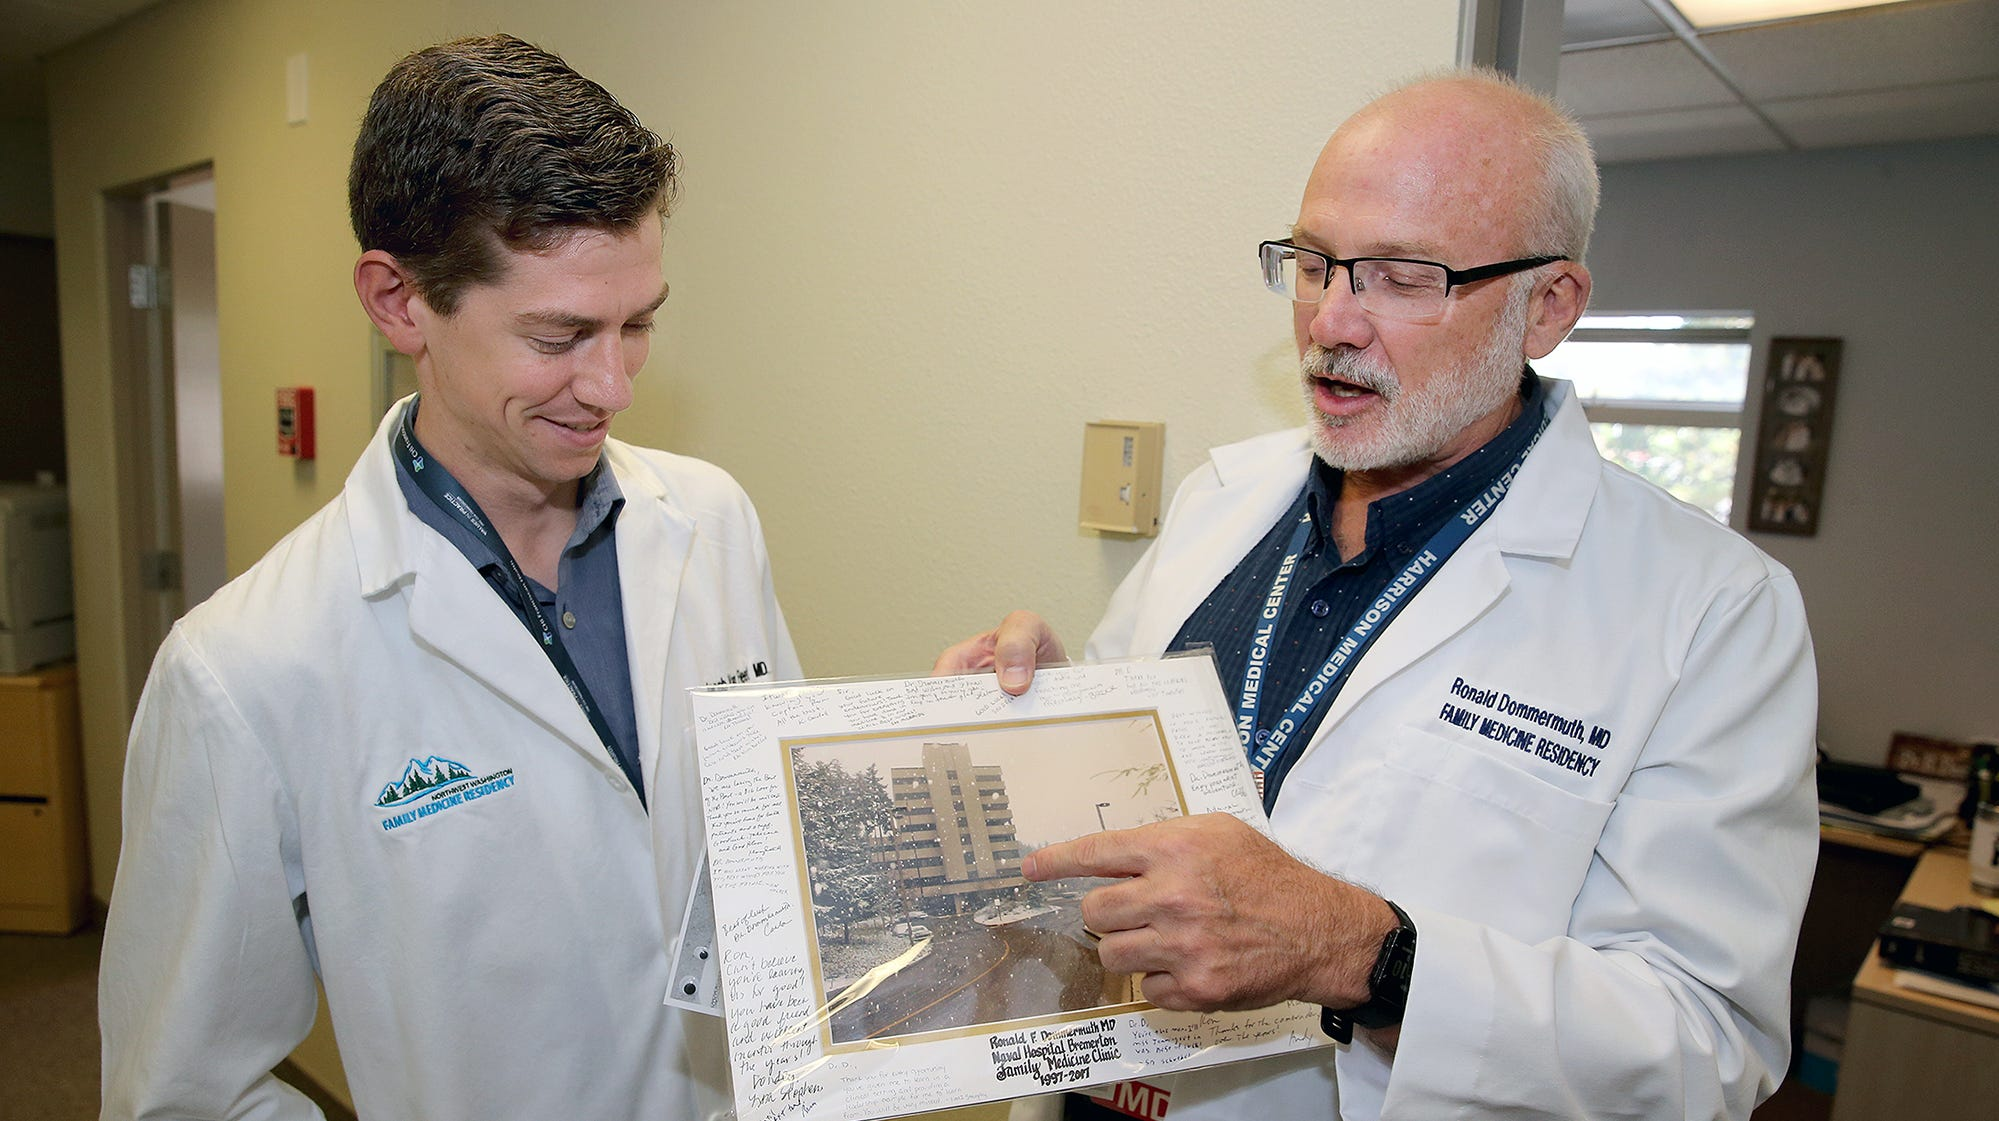 Harrison's residency program got underway this summer. Resident MD Jacob Van Fleet, left, who was born at the Naval Hospital in Bremerton, by doctor Ronald Dommermuth, right, who is now one of his instructors. Dommermuth is holding an old photo of Naval Hospital Bremerton.